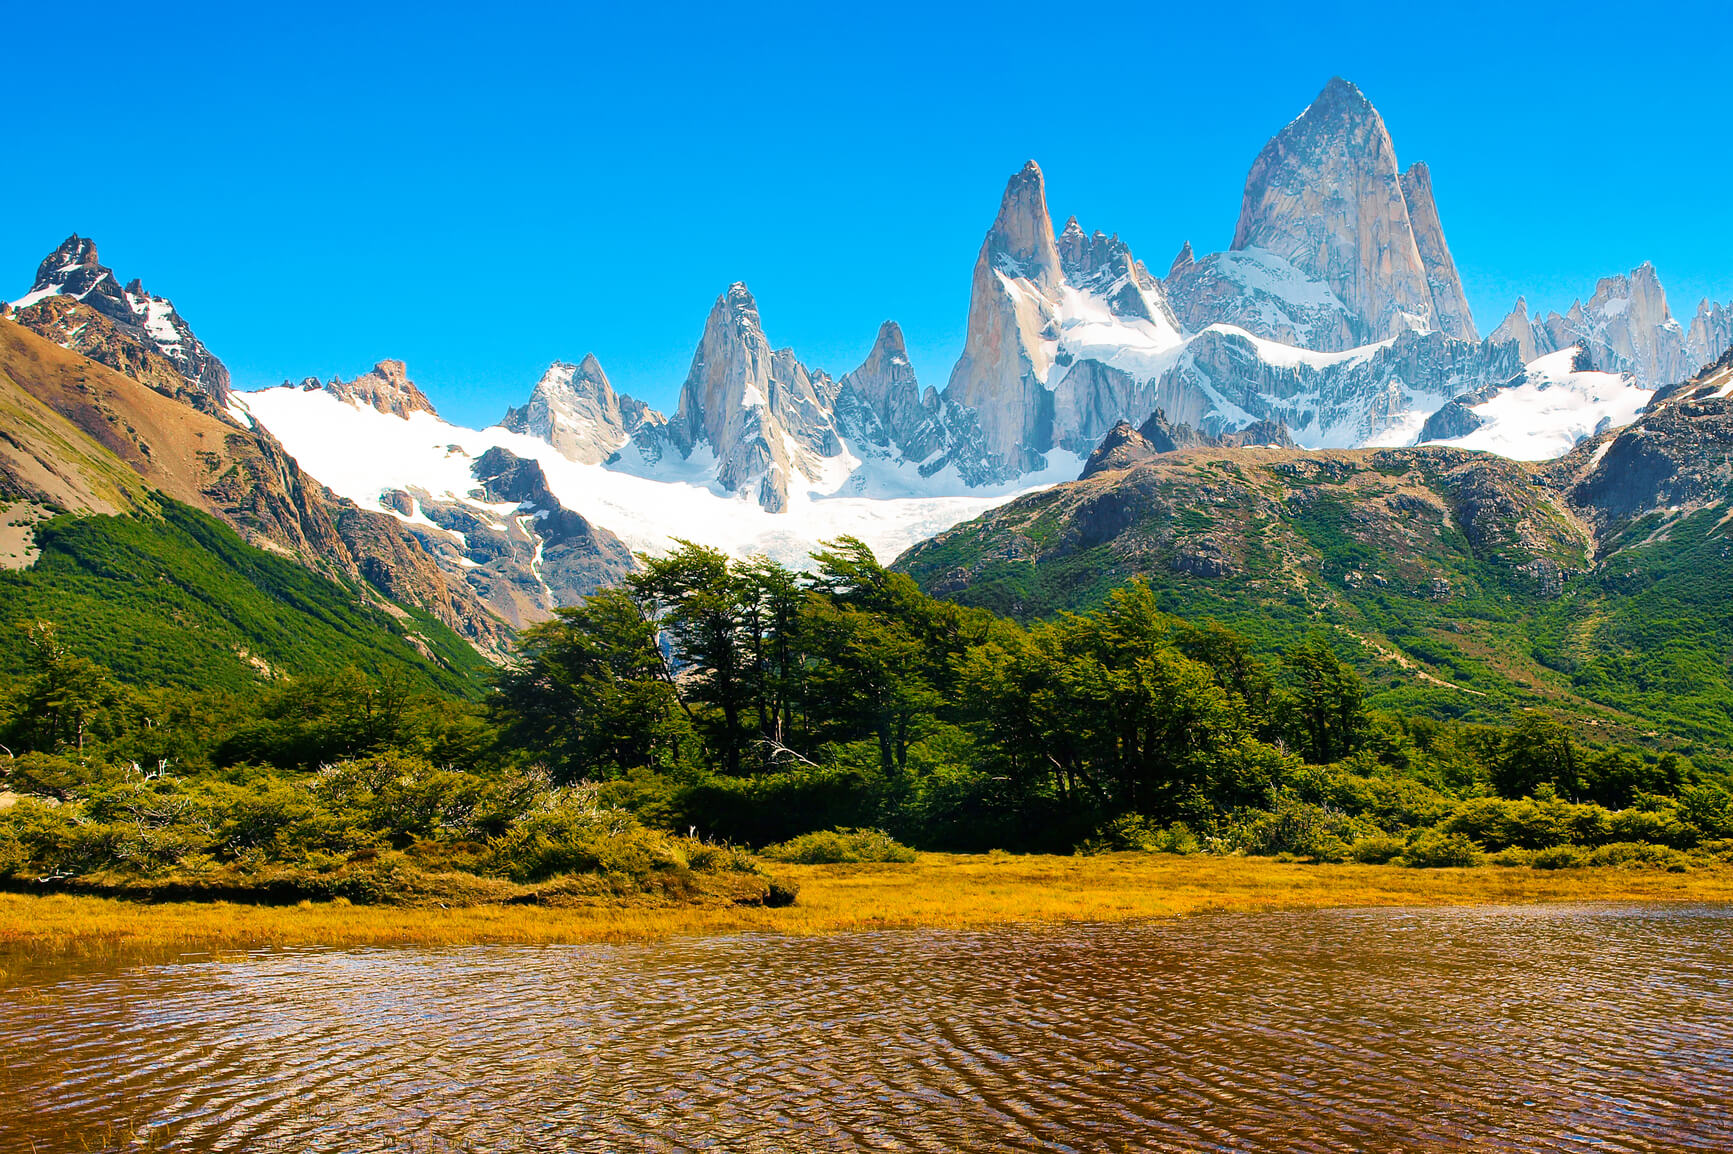 SUMMER: Houston, Texas to Buenos Aires, Argentina for only $498 roundtrip